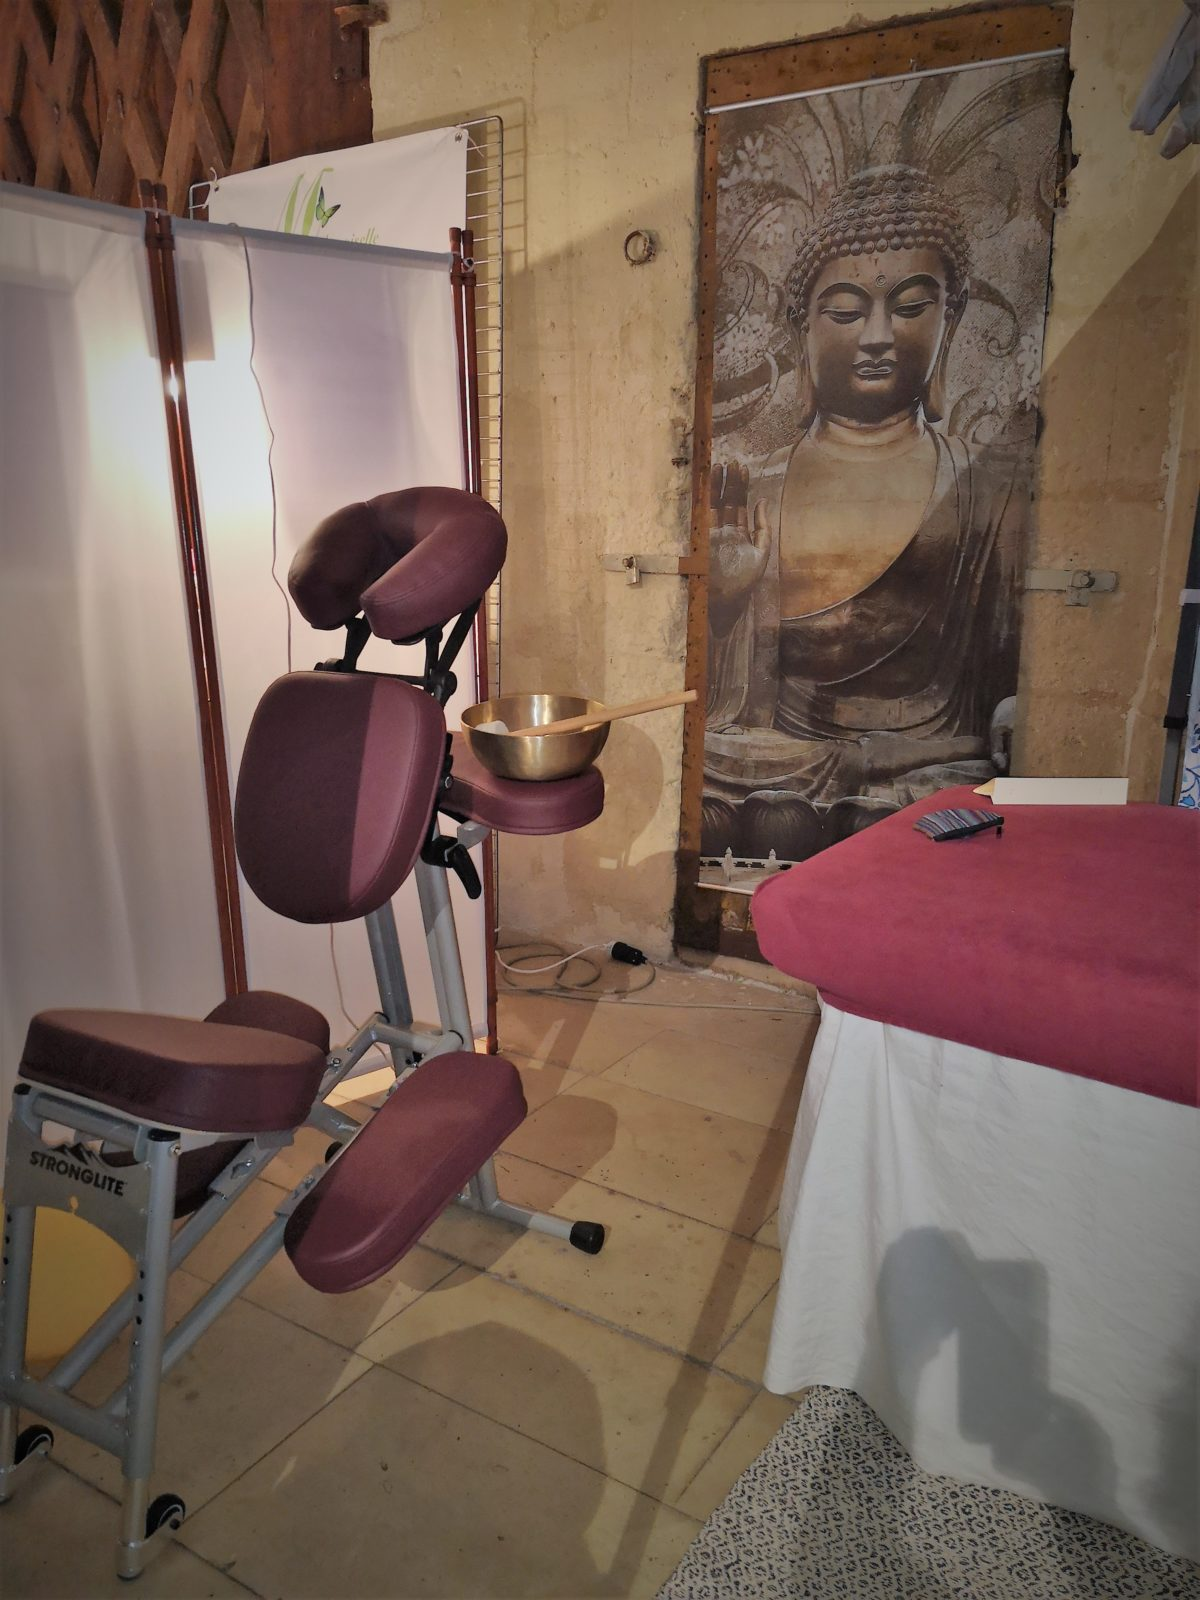 photo de la chaise massage assis pour le massage sonore spécial du dos